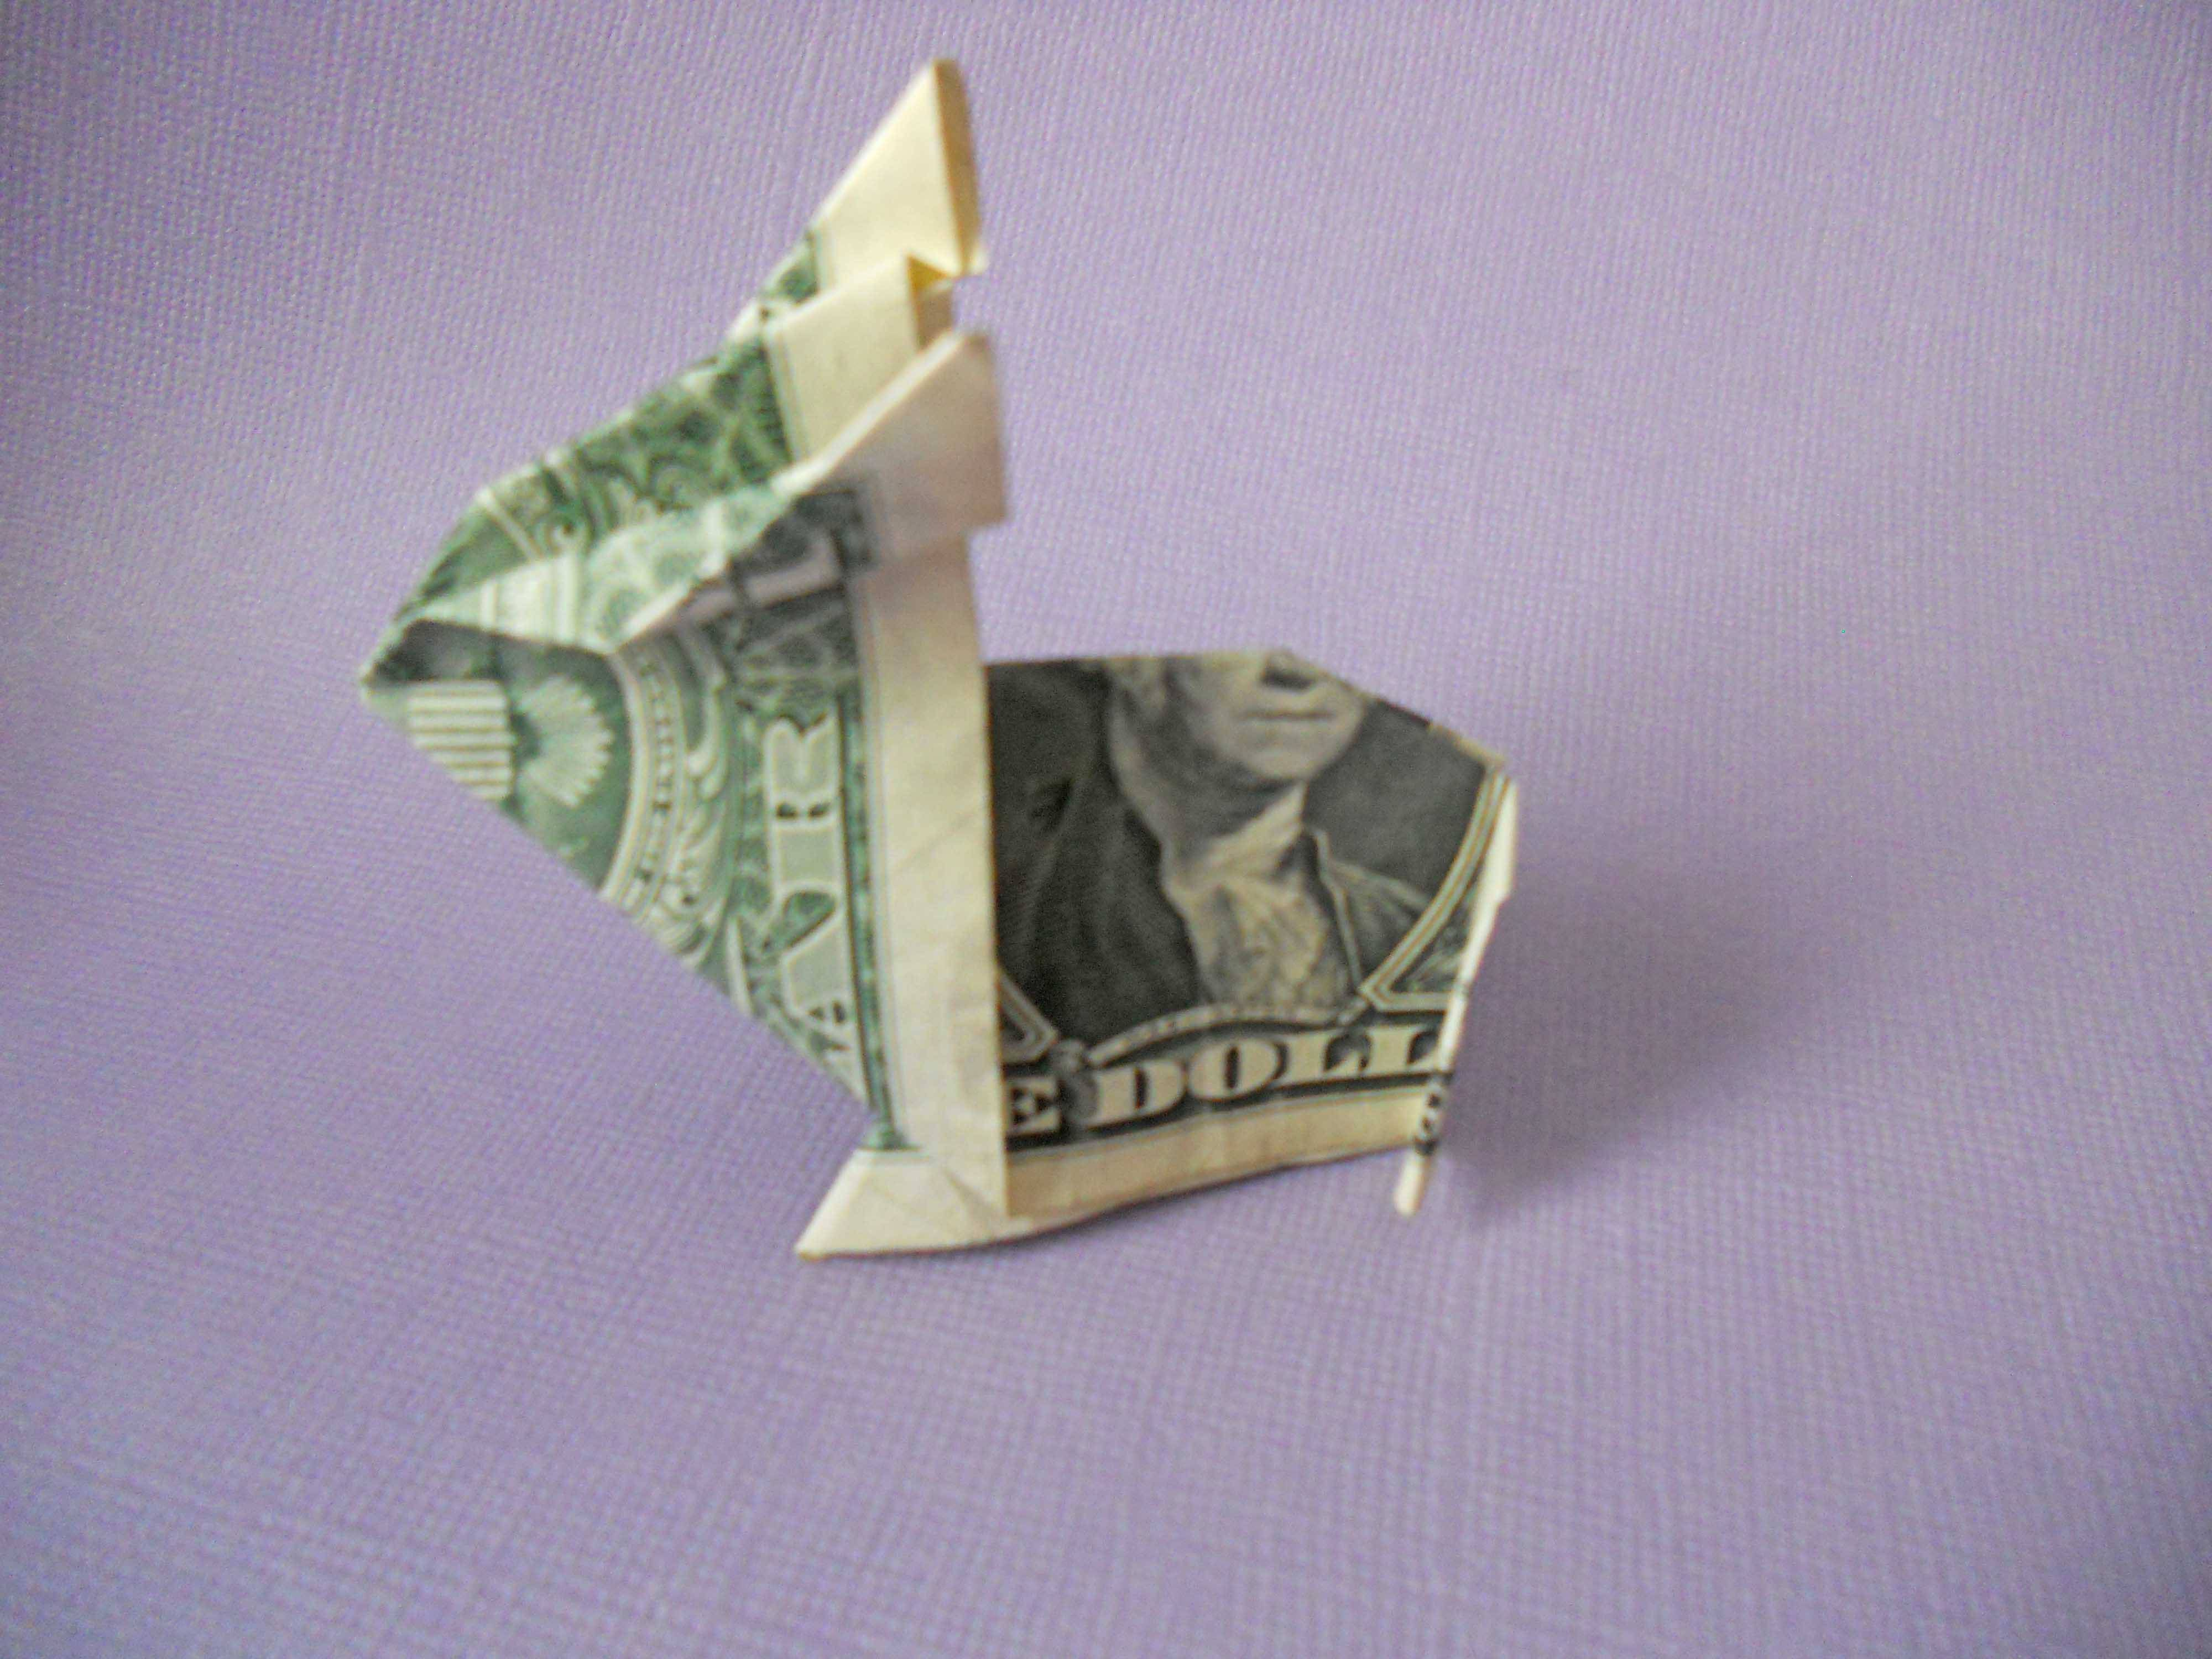 Origami money folding instructions cool ideas - 7 Simple Steps To An Adorable Money Origami Bunny